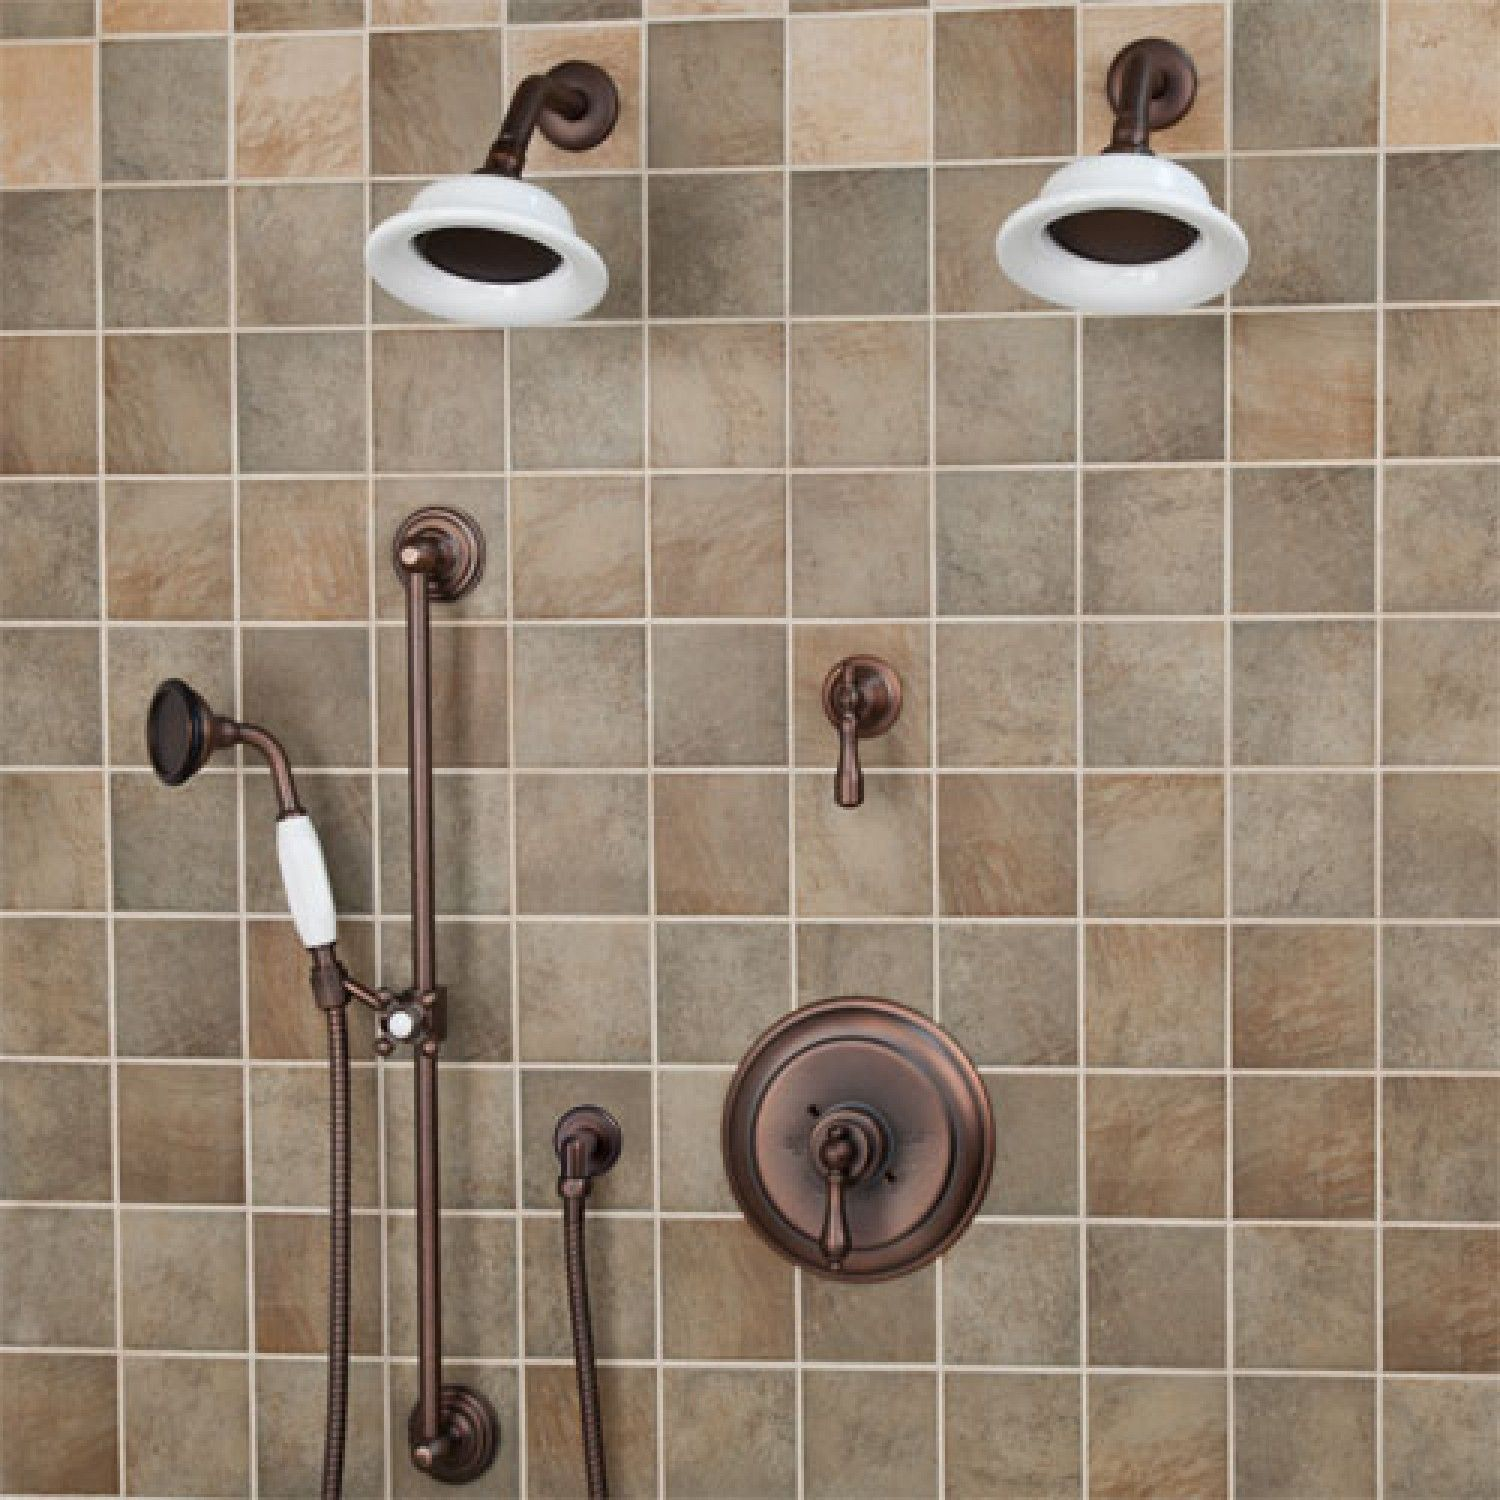 Pressure Balance Shower System Dual Heads Hand Lever Handle Oil Rubbed Bronze Bathroom